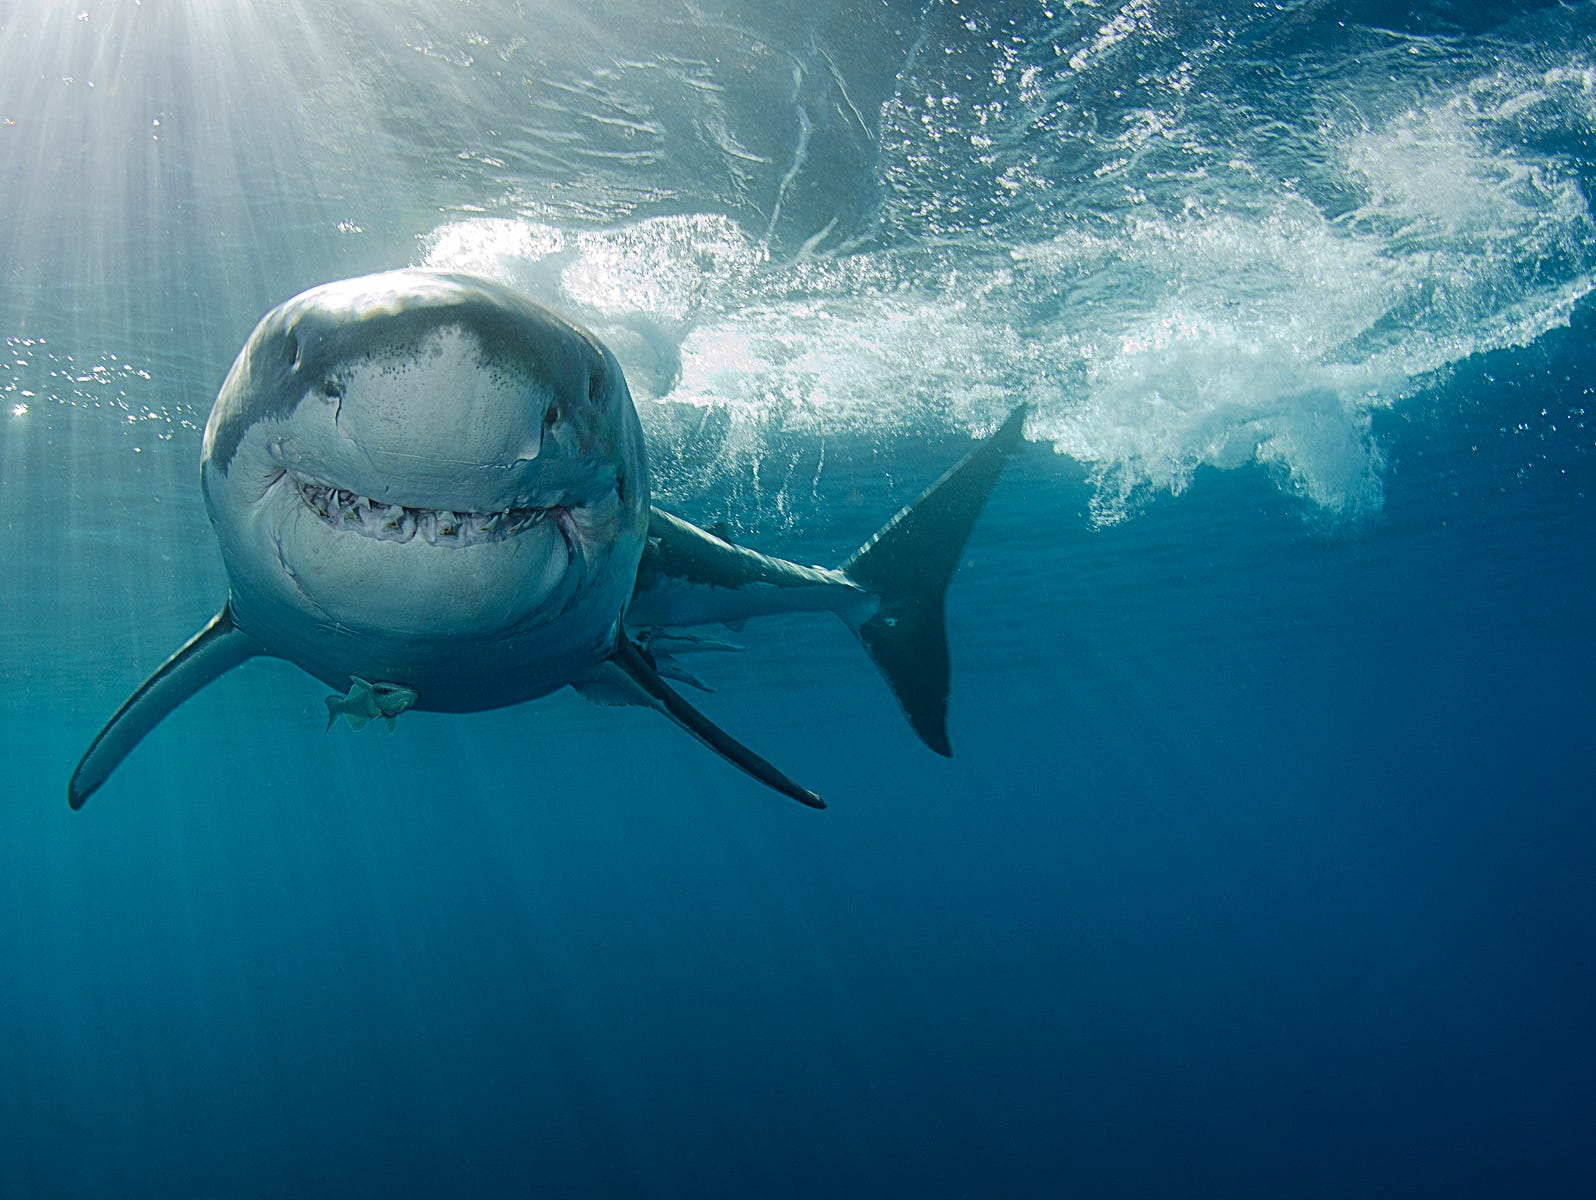 Shark Week starts July 23rd, so take our quiz and show off your knowledge of these ocean predators!